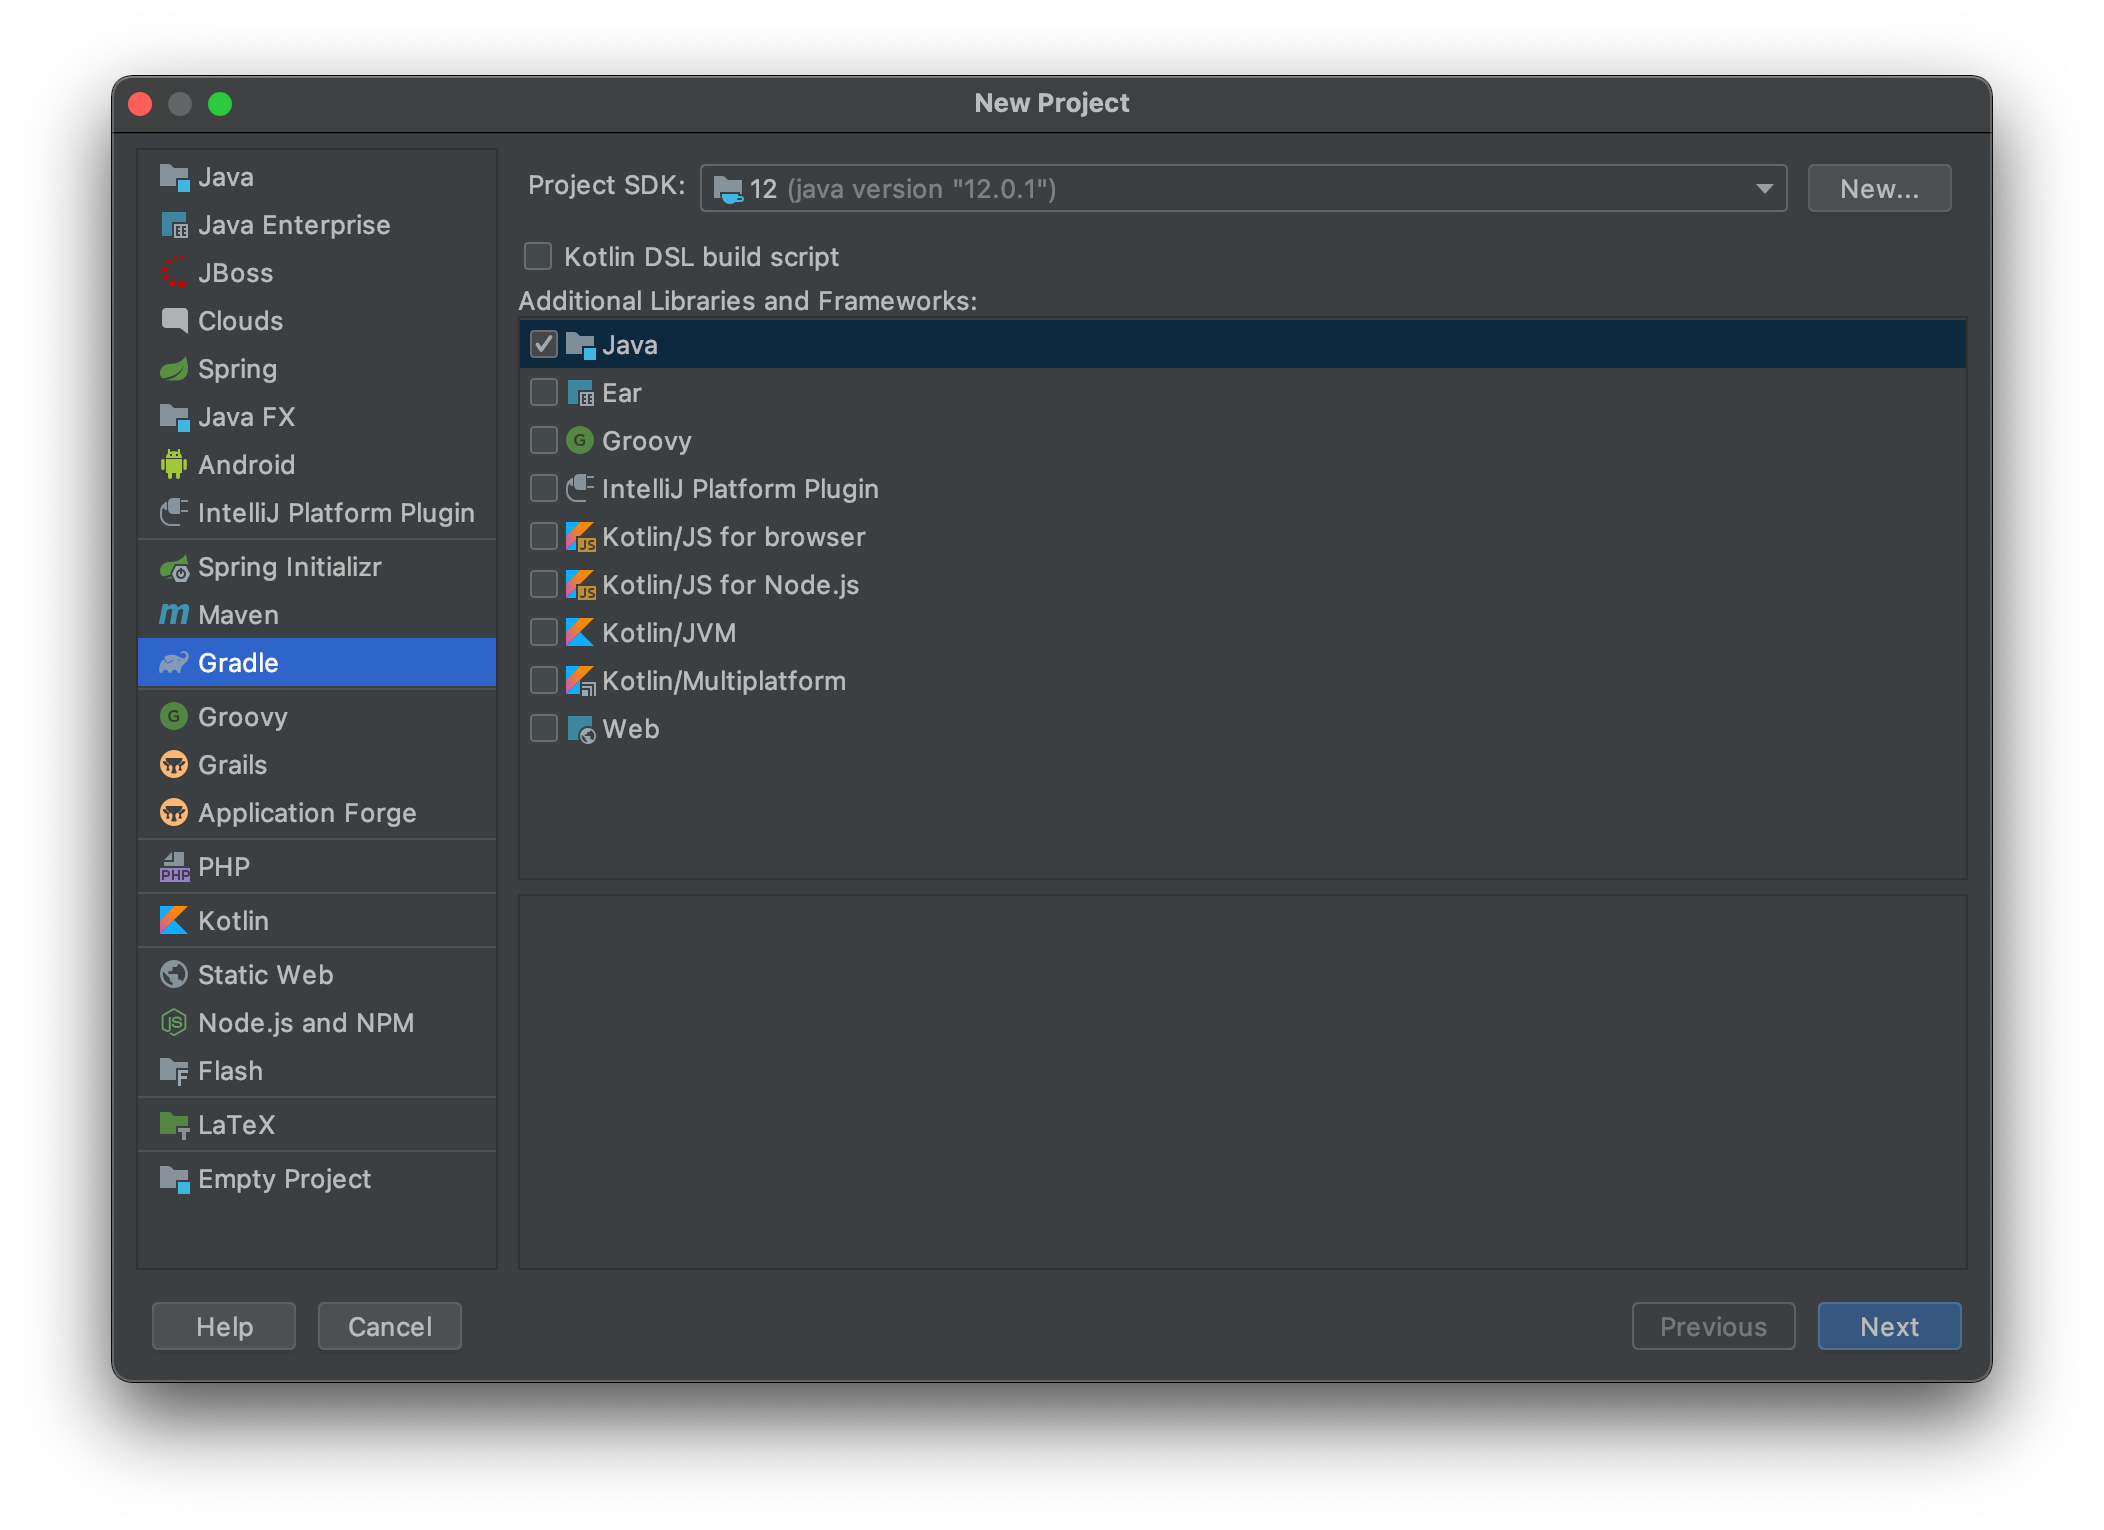 Create a new Gradle project